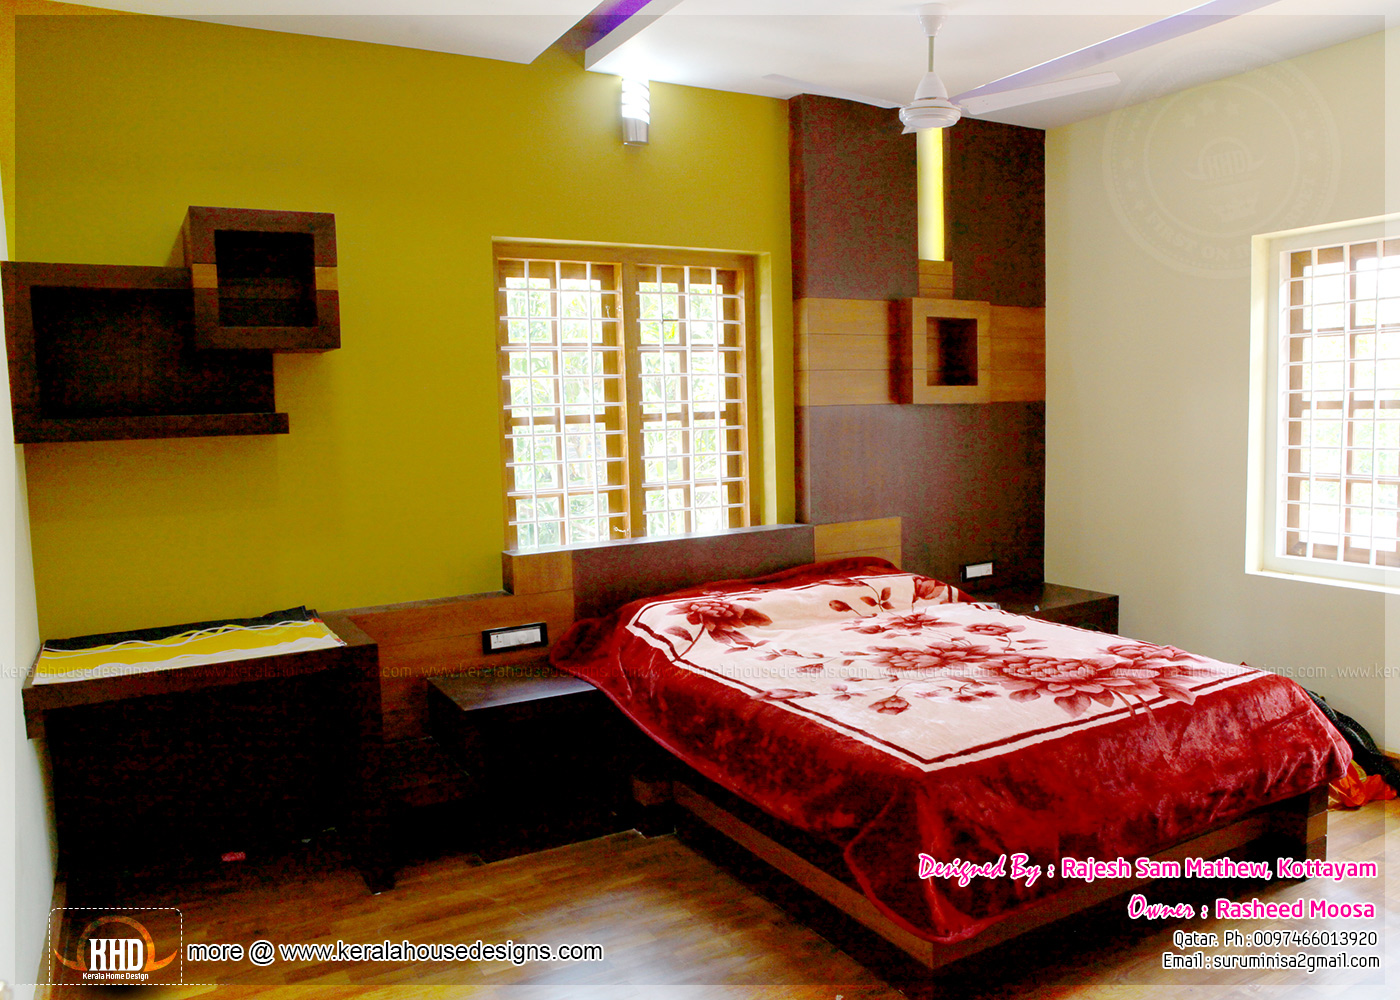 Kerala interior design with photos | Home Kerala Plans